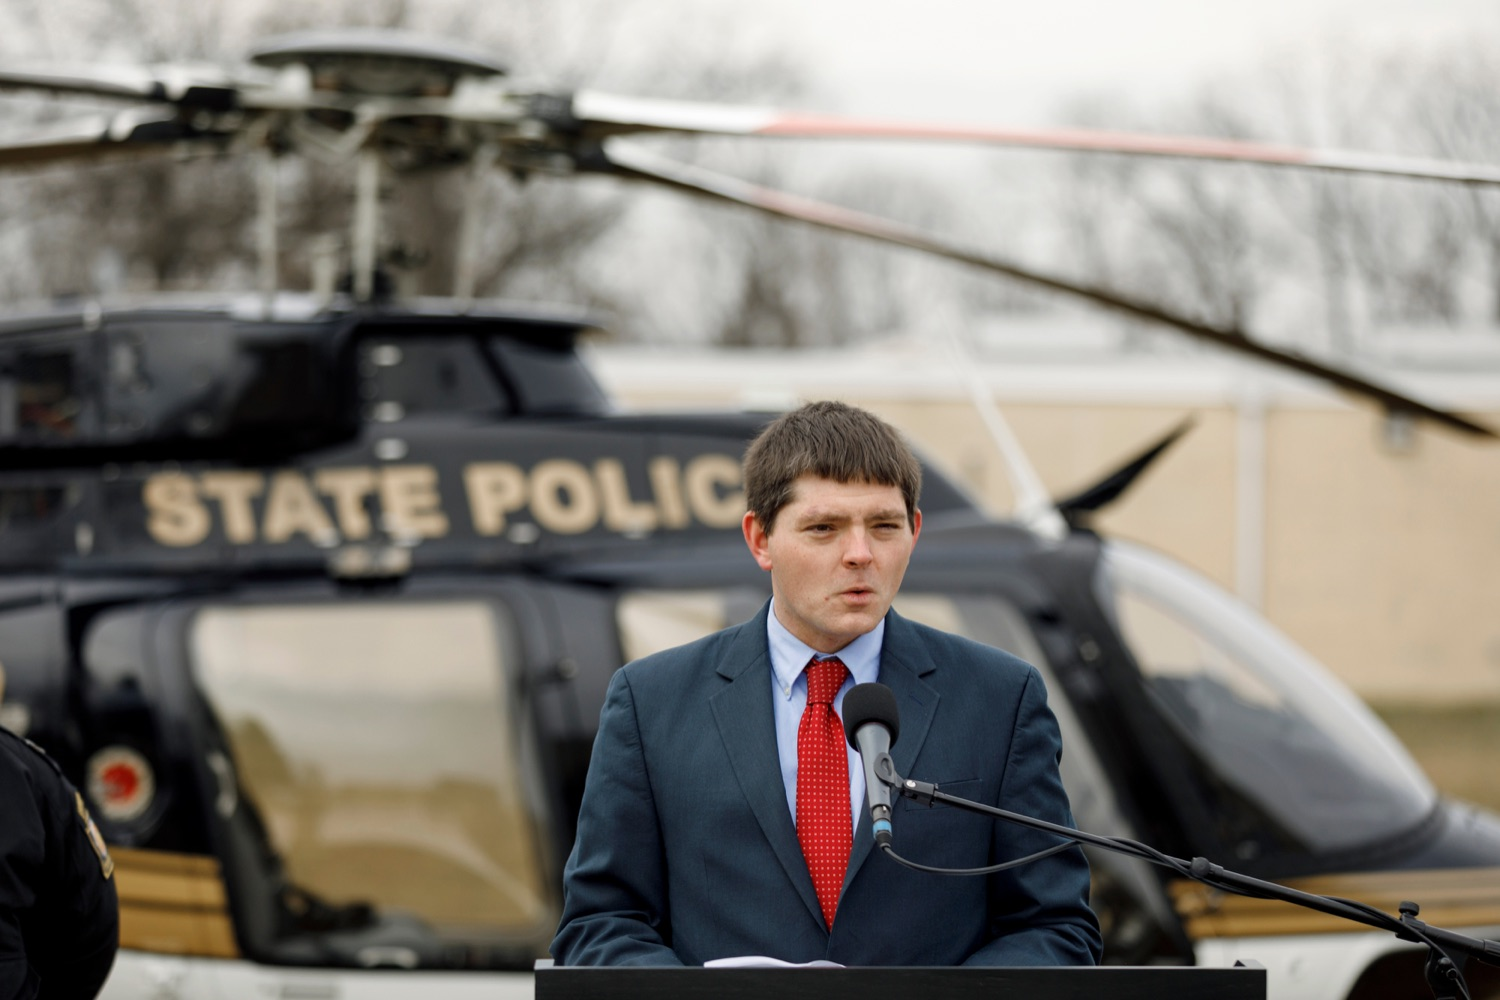 "<a href=""https://filesource.wostreaming.net/commonwealthofpa/photo/17706_DOH_Drone_Safety_NK_009.JPG"" target=""_blank"">⇣ Download Photo<br></a>Dylan Ferguson, the director of the Bureau of Emergency Medical Services with the Pennsylvania Department of Health, speaks during a press conference, which highlighted the danger drones pose to helicopters in emergency situations, at the Pennsylvania State Police Academy in Hershey on Friday, January 31, 2020."